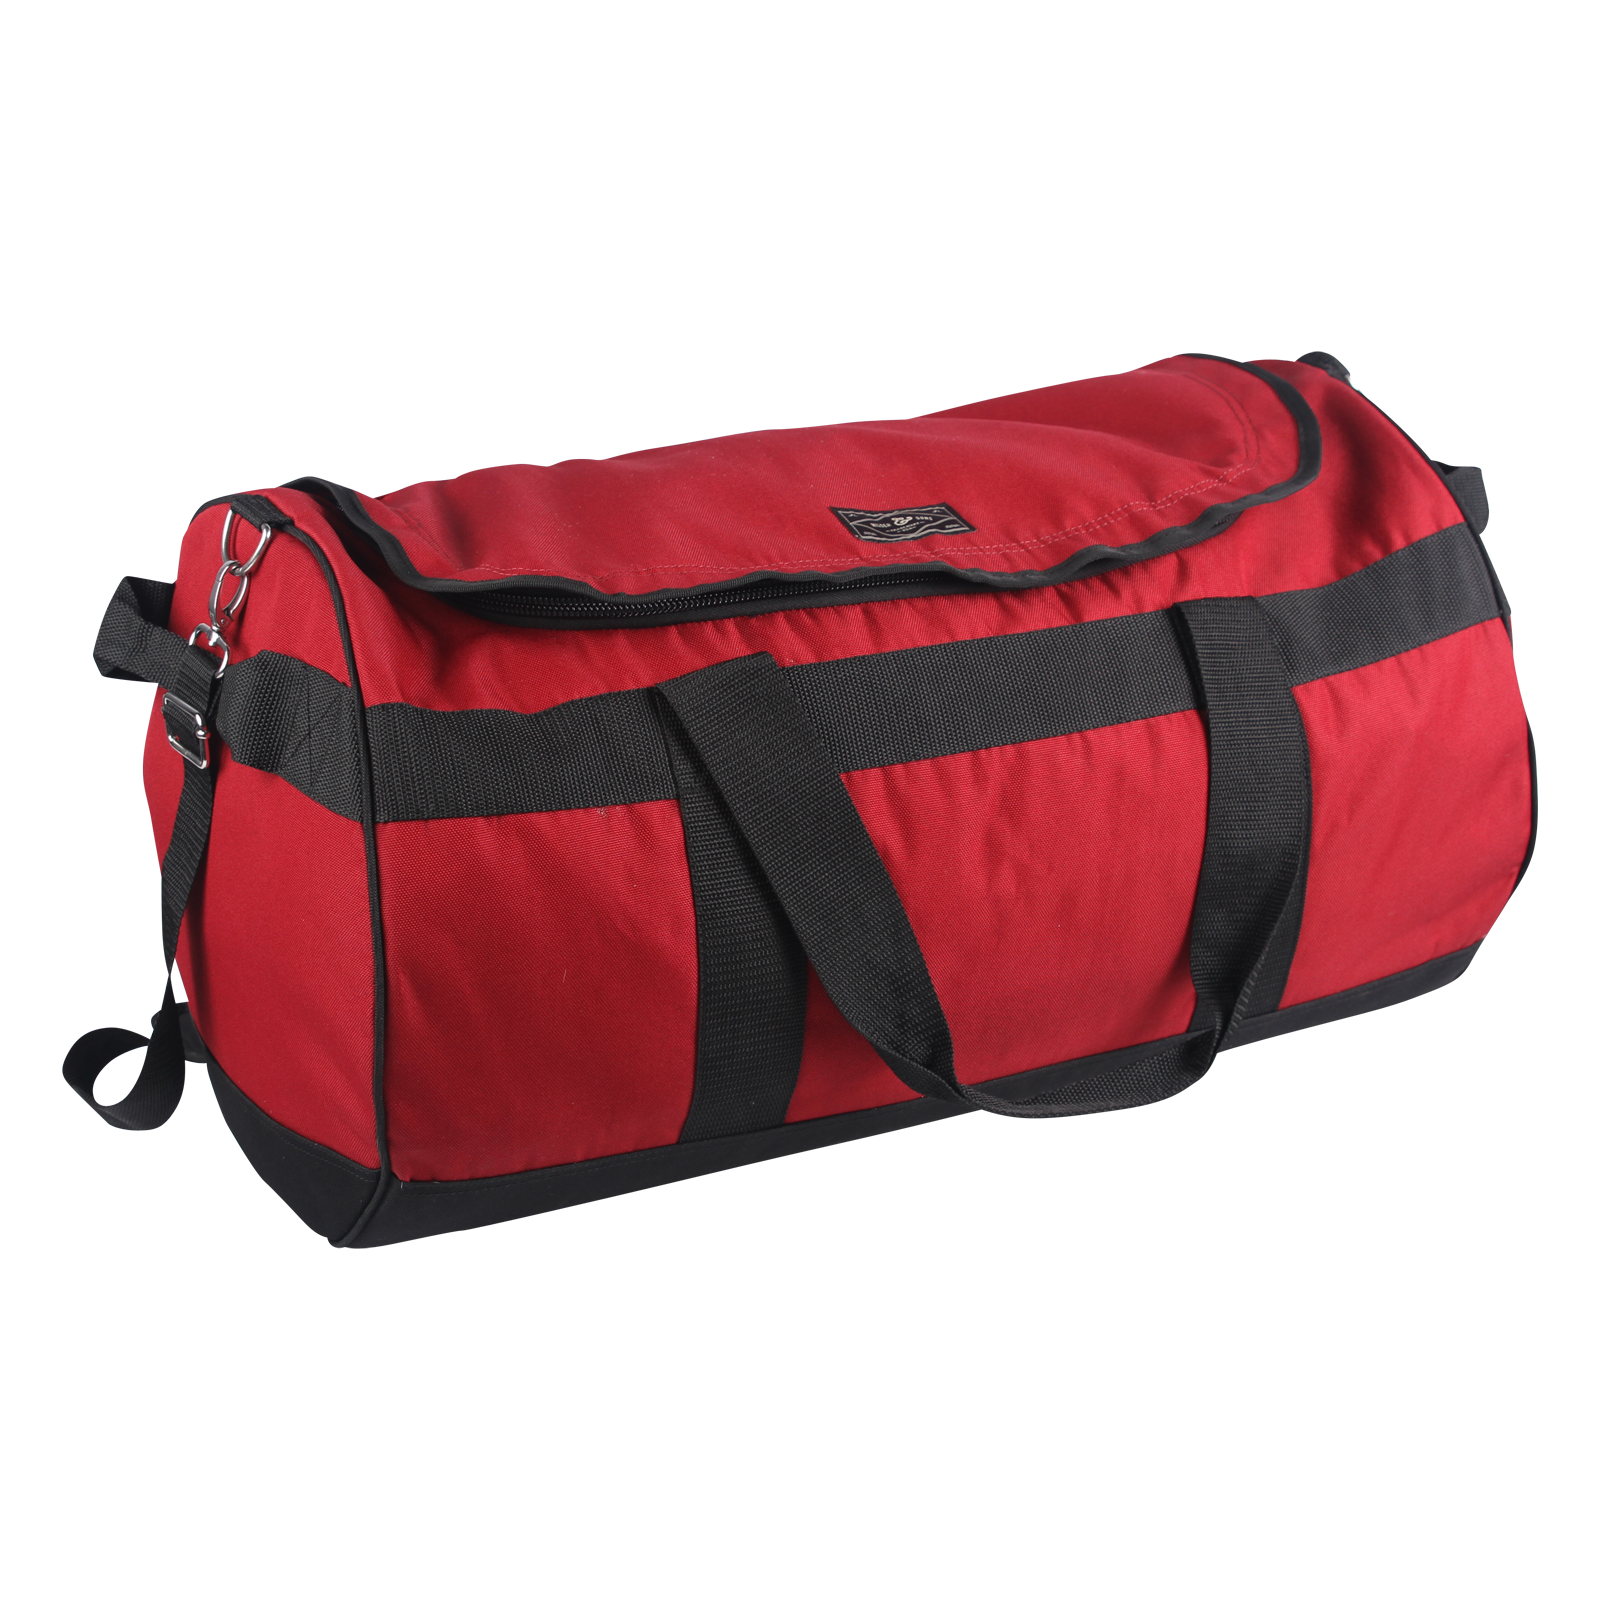 Duffle Bag - Ox Blood - Duffel Bag PNG